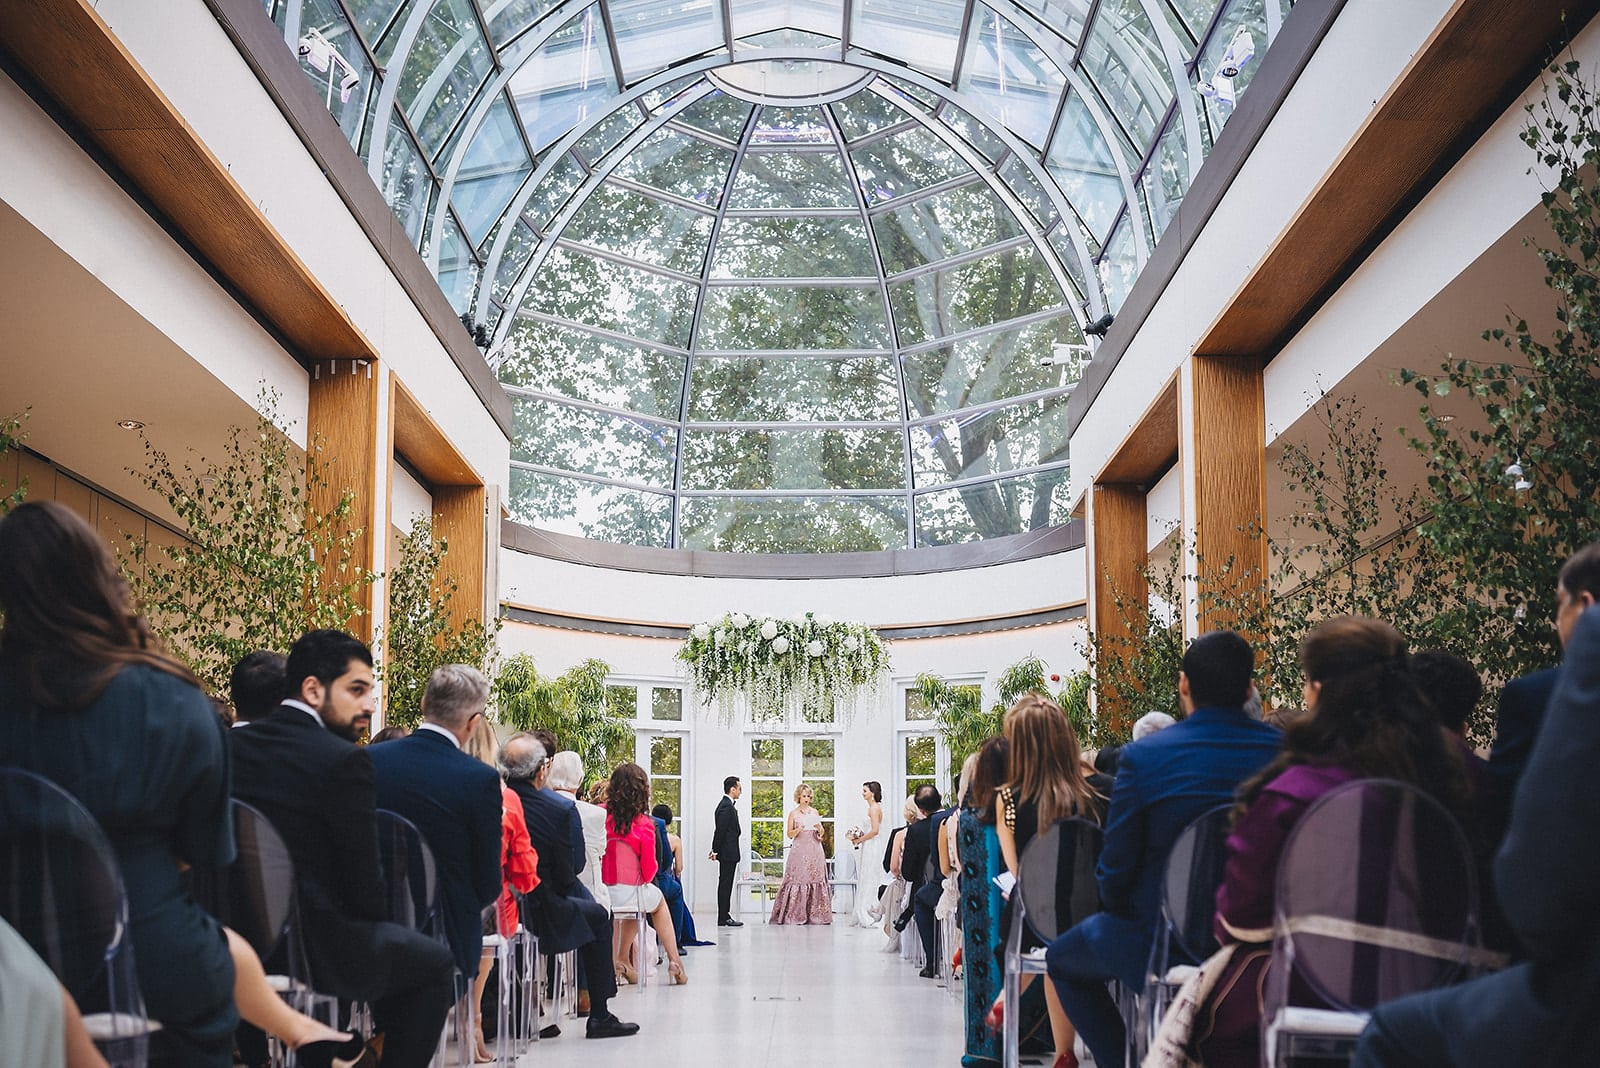 Wedding ceremony in the Orangery at the Hurlingham Club